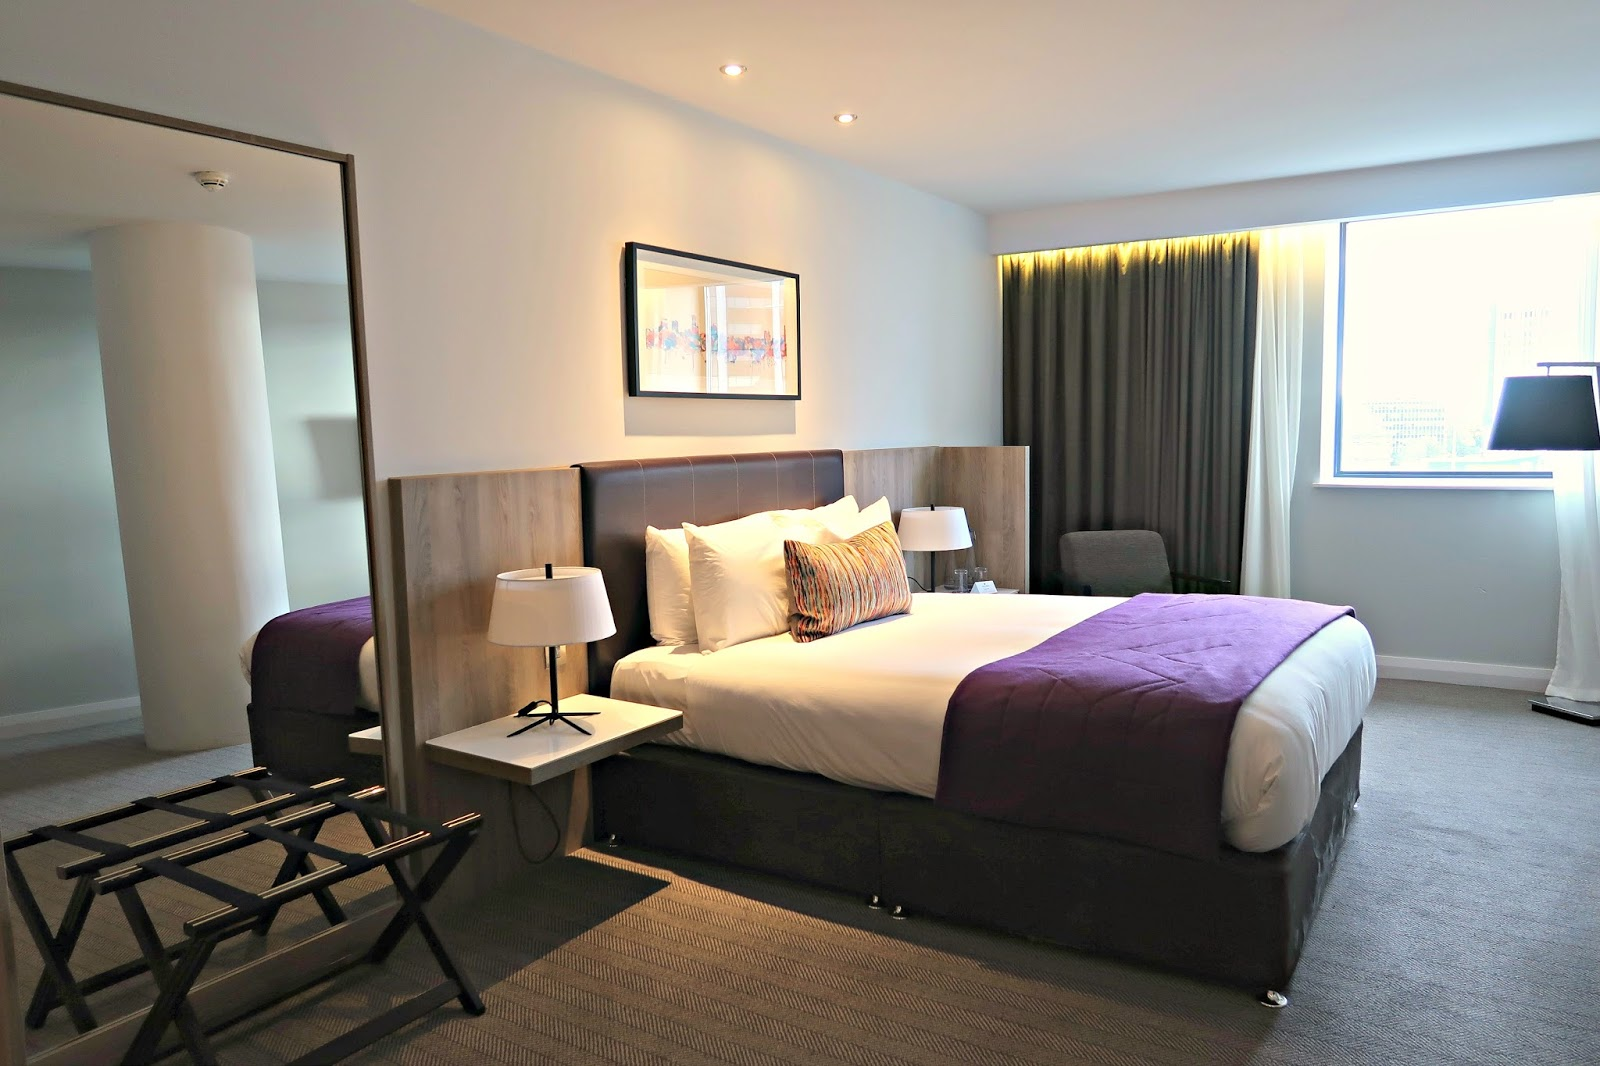 Park Regis Hotel Birmingham Luxury Blog Review Executive Room